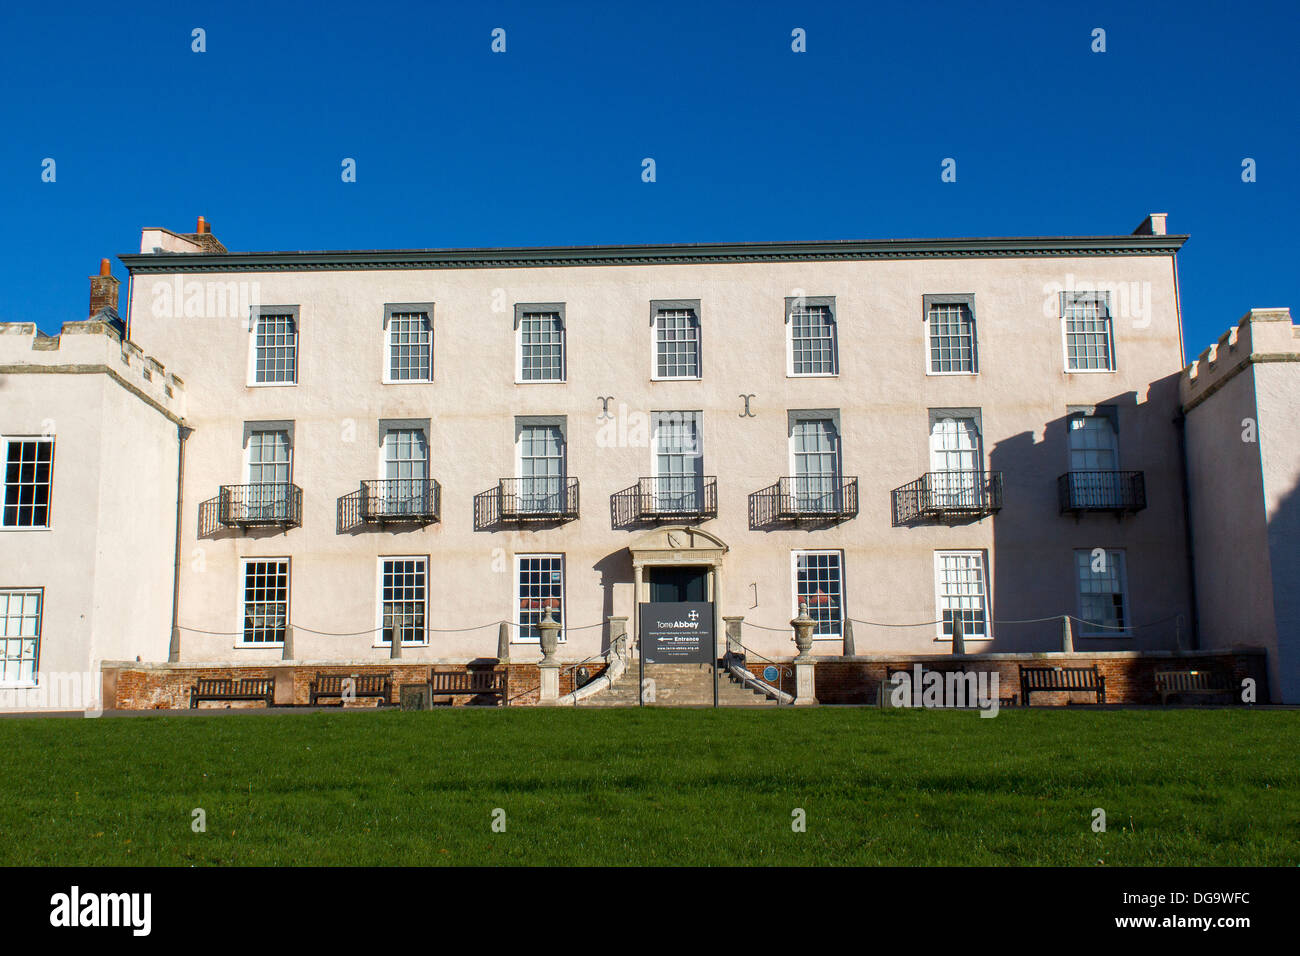 Torre Abbey is a historic building and art gallery in Torquay, Devon, which lies in the South West of England. It was founded in - Stock Image